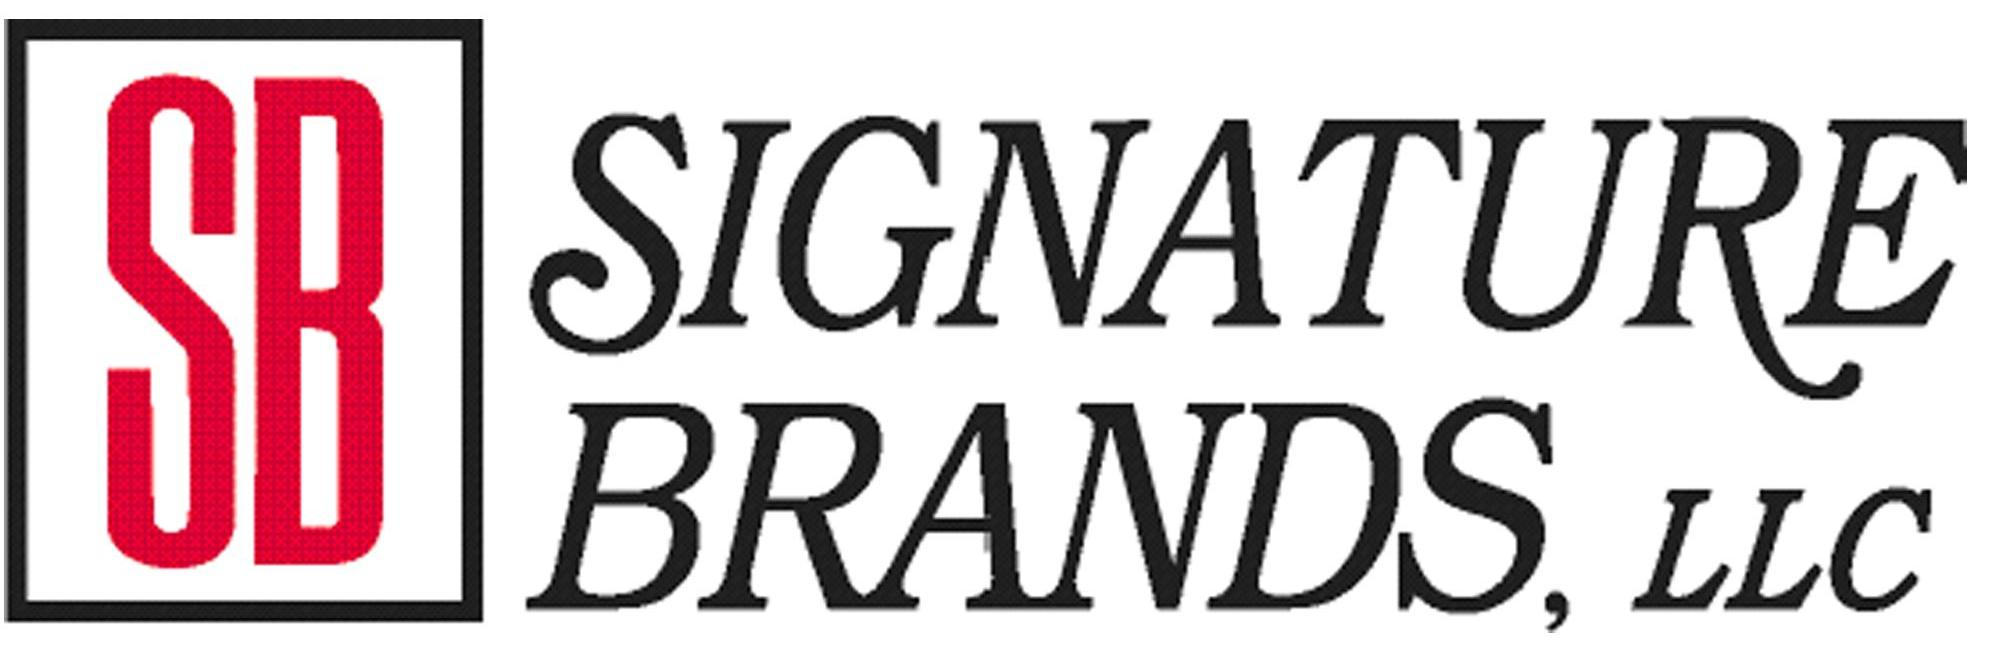 Signature Brands Logo.jpg